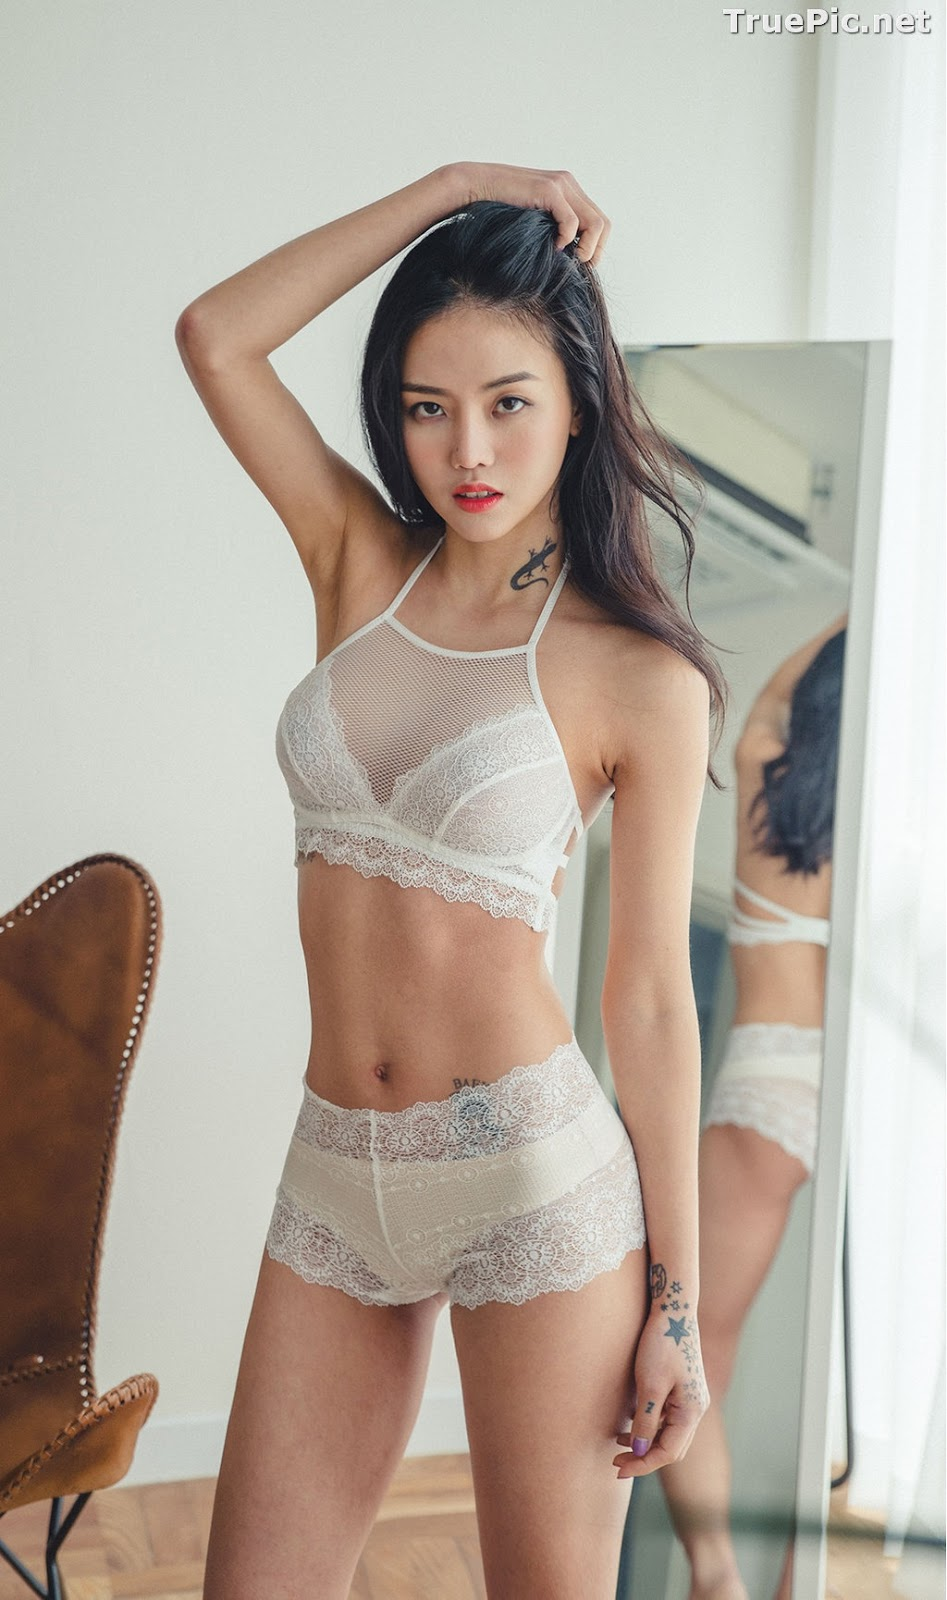 Image Korean Fashion Model – Baek Ye Jin – Sexy Lingerie Collection #6 - TruePic.net - Picture-10